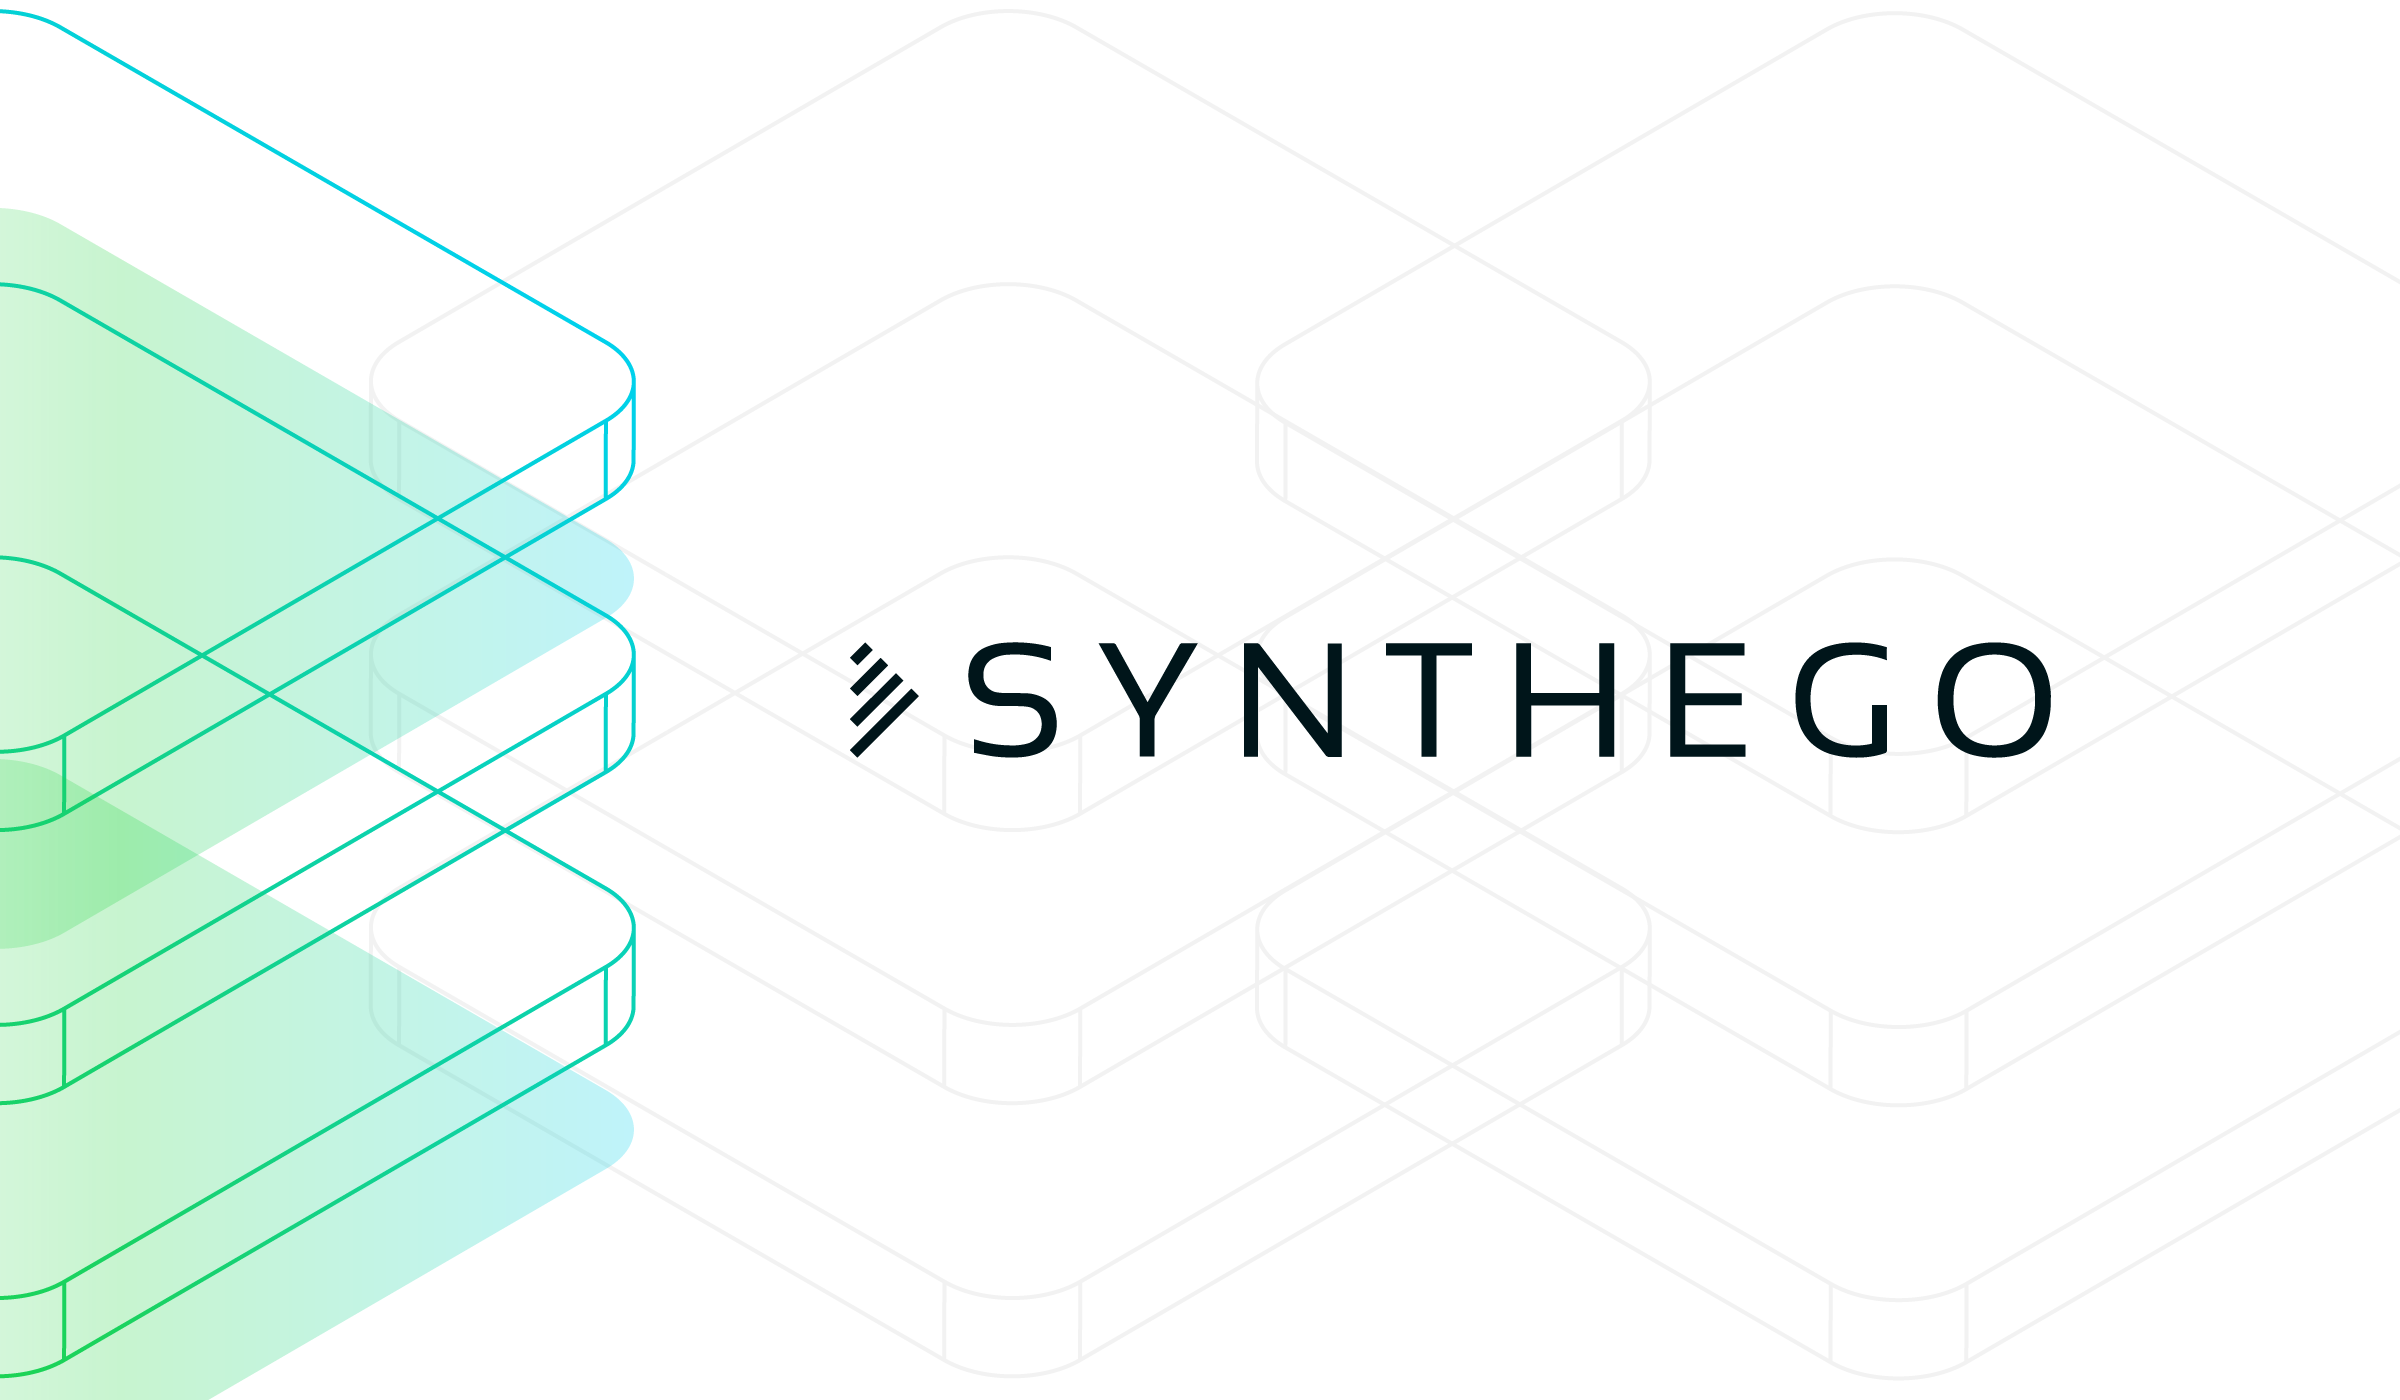 synthego.com - Full Stack Genome Engineering